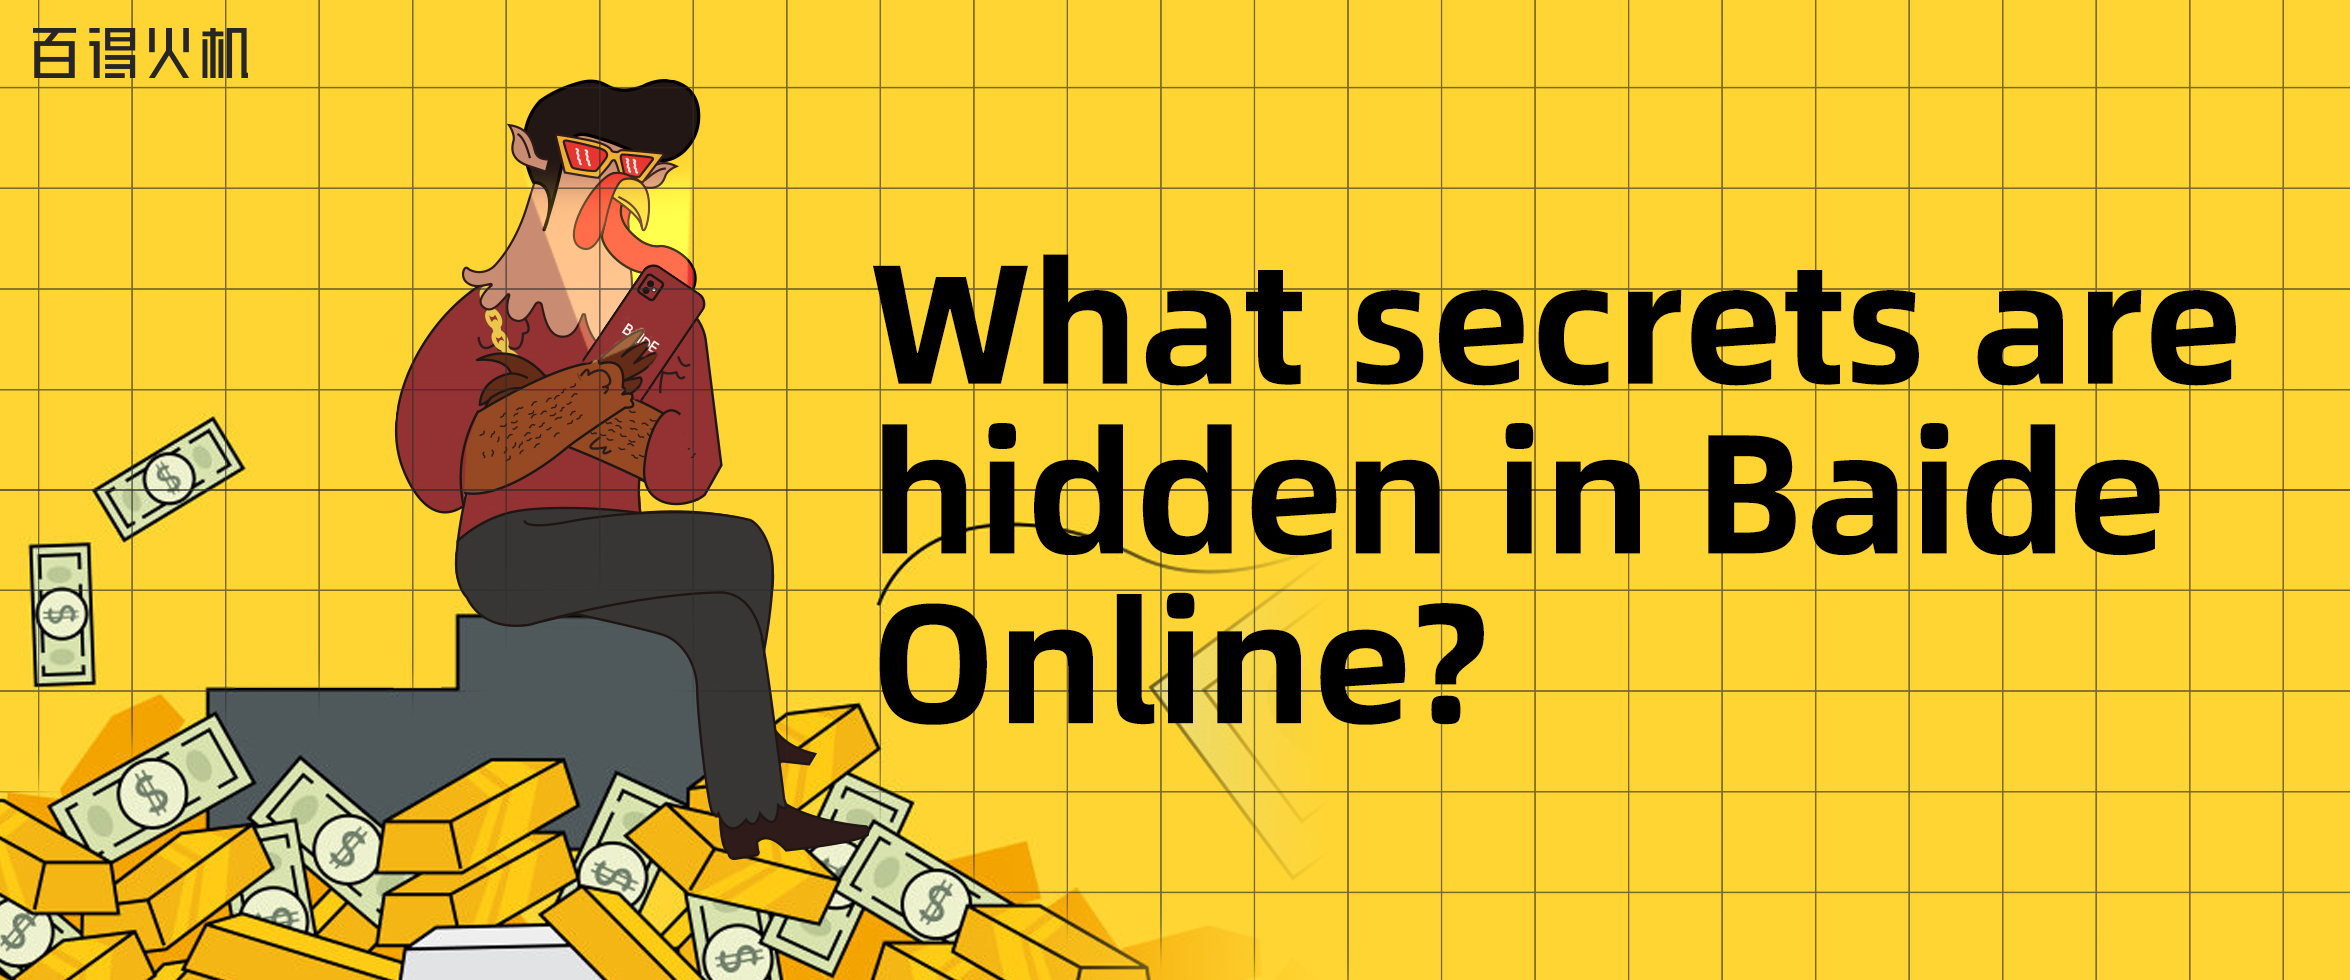 What secrets are hidden in Baide Online?